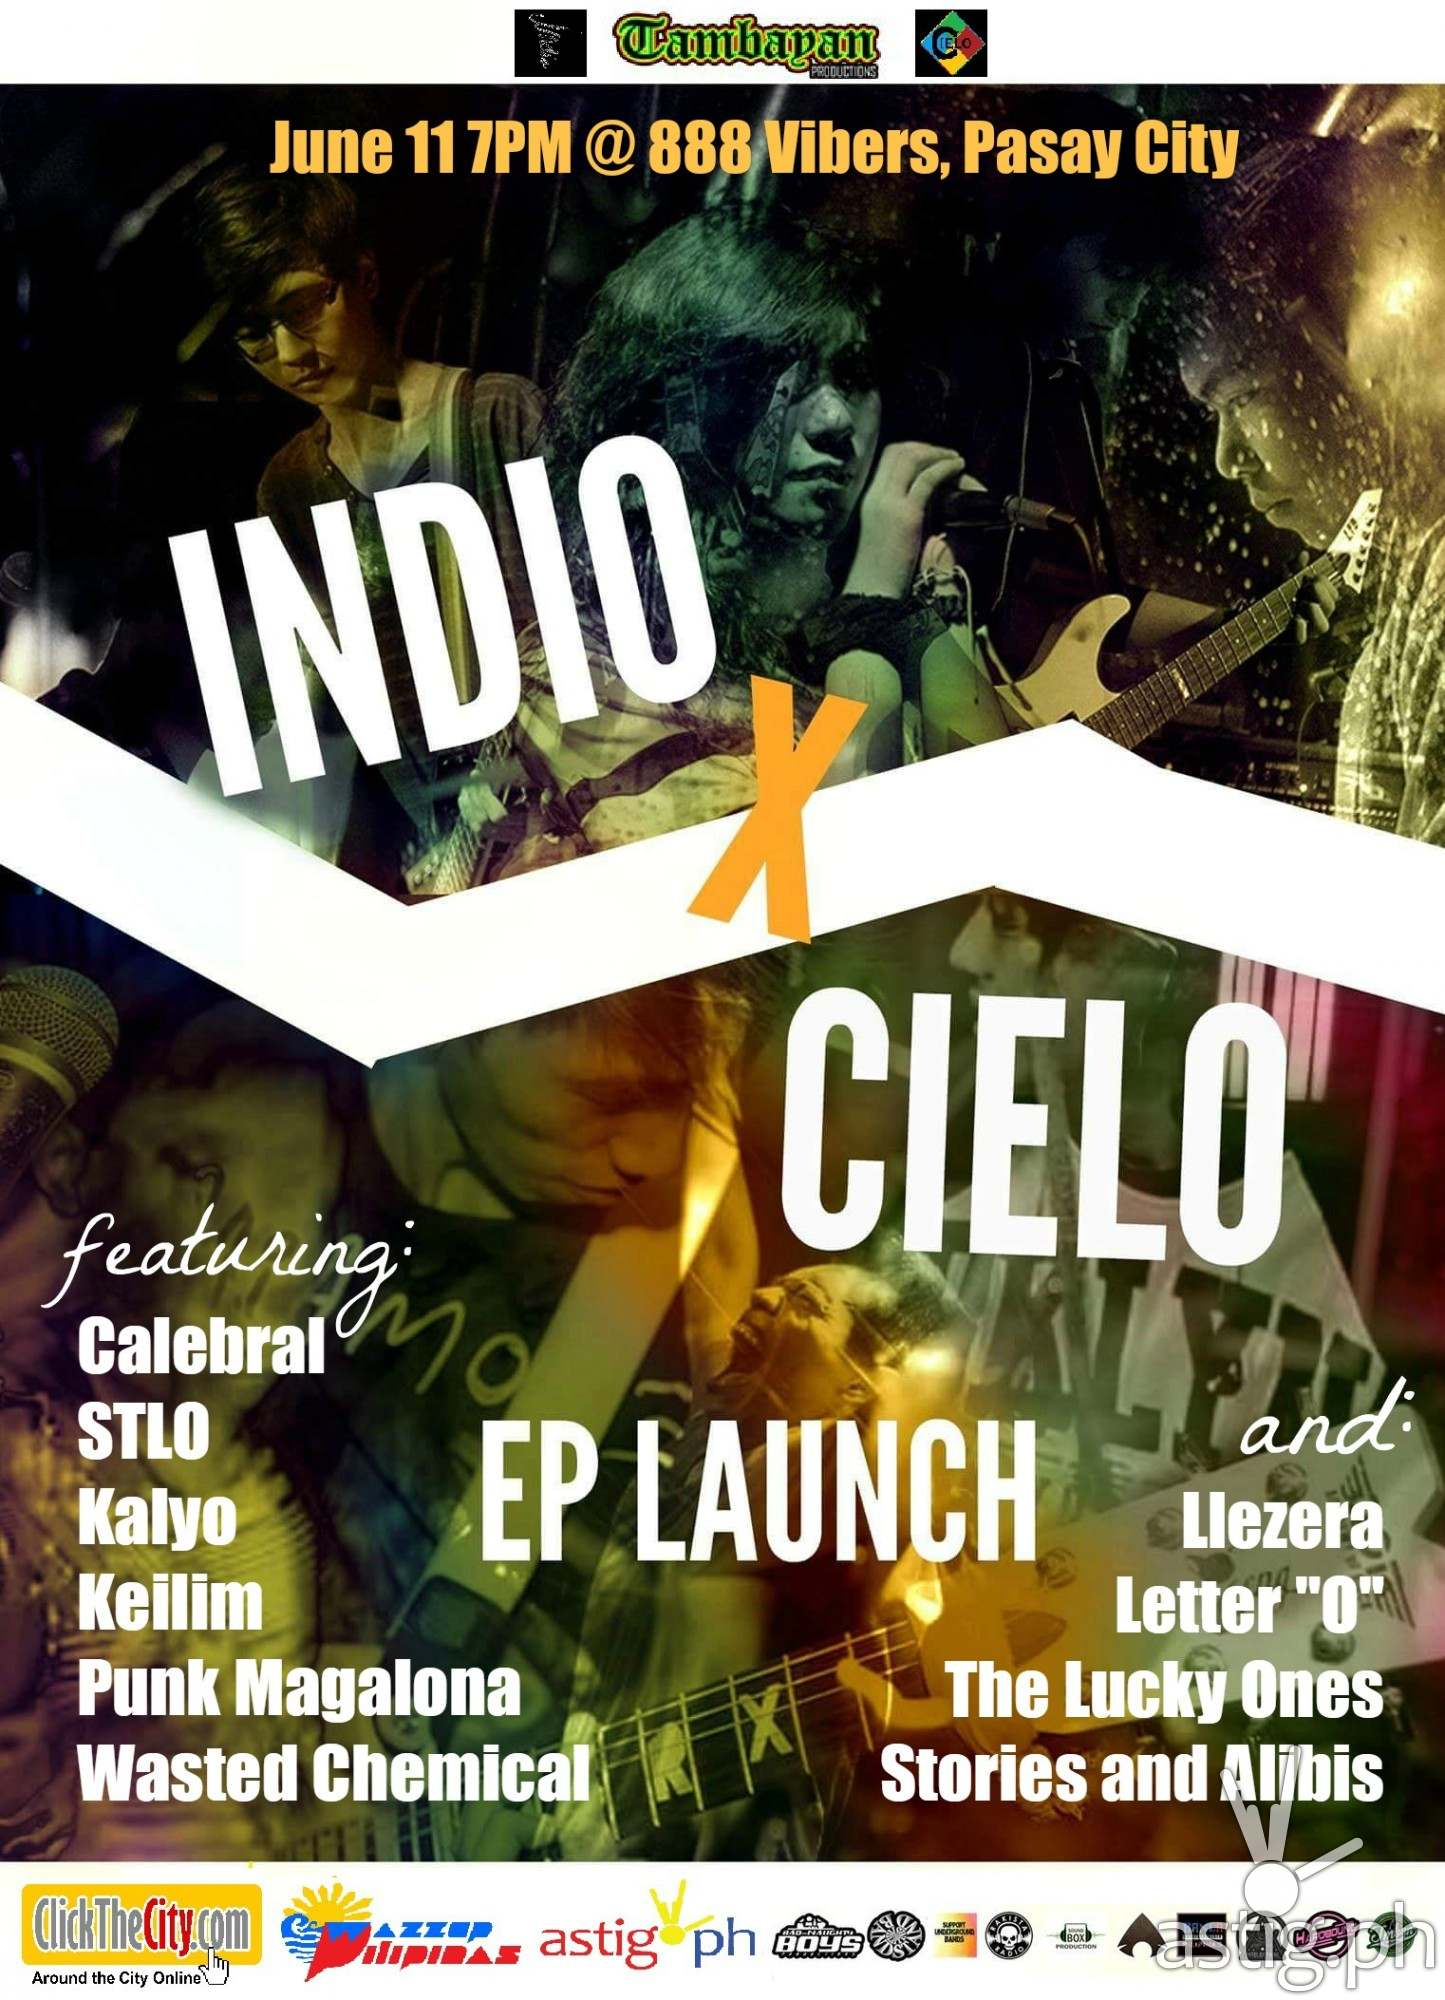 INDIO X CIELO EP launch